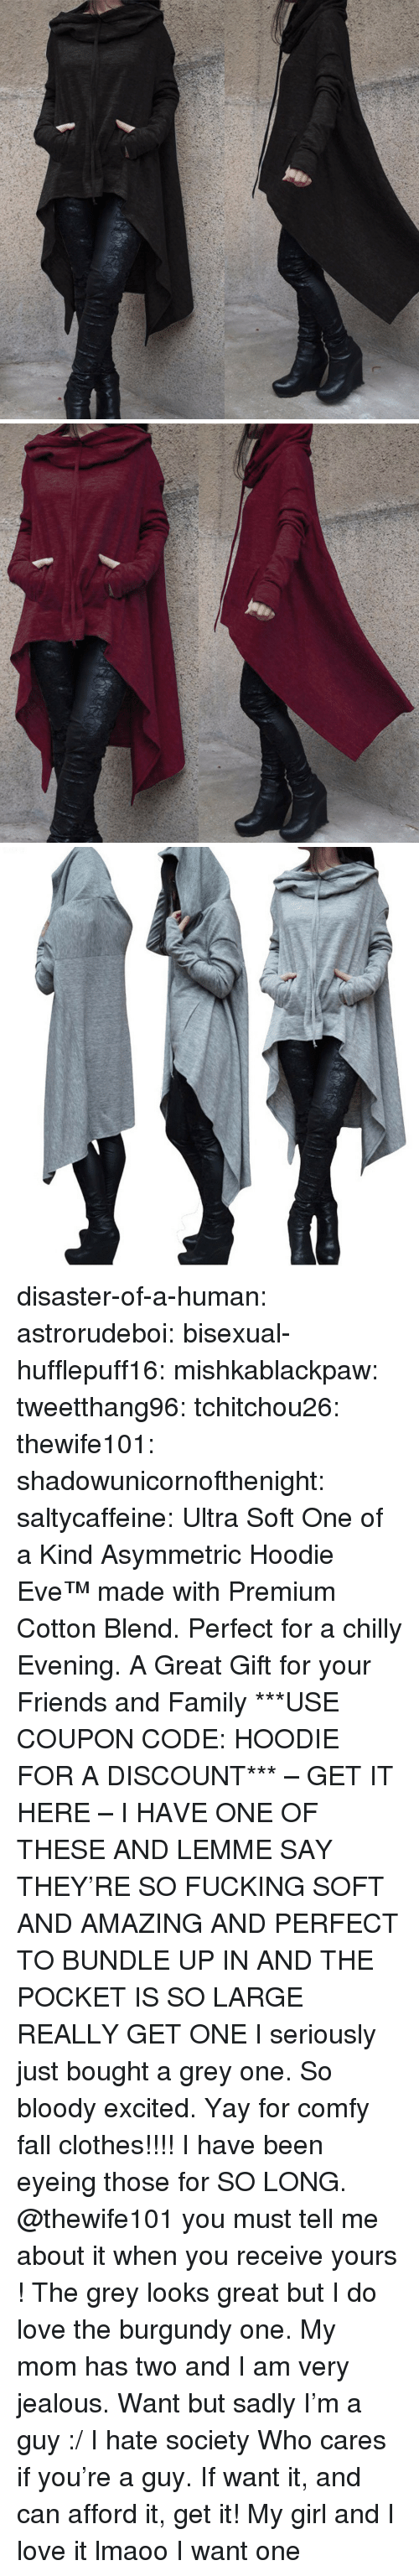 Clothes, Fall, and Family: disaster-of-a-human:  astrorudeboi:   bisexual-hufflepuff16:  mishkablackpaw:   tweetthang96:  tchitchou26:  thewife101:  shadowunicornofthenight:  saltycaffeine:  Ultra Soft One of a Kind Asymmetric Hoodie Eve™ made with Premium Cotton Blend. Perfect for a chilly Evening. A Great Gift for your Friends and Family ***USE COUPON CODE: HOODIE FOR A DISCOUNT*** – GET IT HERE –   I HAVE ONE OF THESE AND LEMME SAY THEY'RE SO FUCKING SOFT AND AMAZING AND PERFECT TO BUNDLE UP IN AND THE POCKET IS SO LARGE REALLY GET ONE   I seriously just bought a grey one. So bloody excited. Yay for comfy fall clothes!!!!   I have been eyeing those for SO LONG. @thewife101 you must tell me about it when you receive yours ! The grey looks great but I do love the burgundy one.   My mom has two and I am very jealous.   Want but sadly I'm a guy :/ I hate society   Who cares if you're a guy. If want it, and can afford it, get it!   My girl and I love it lmaoo   I want one